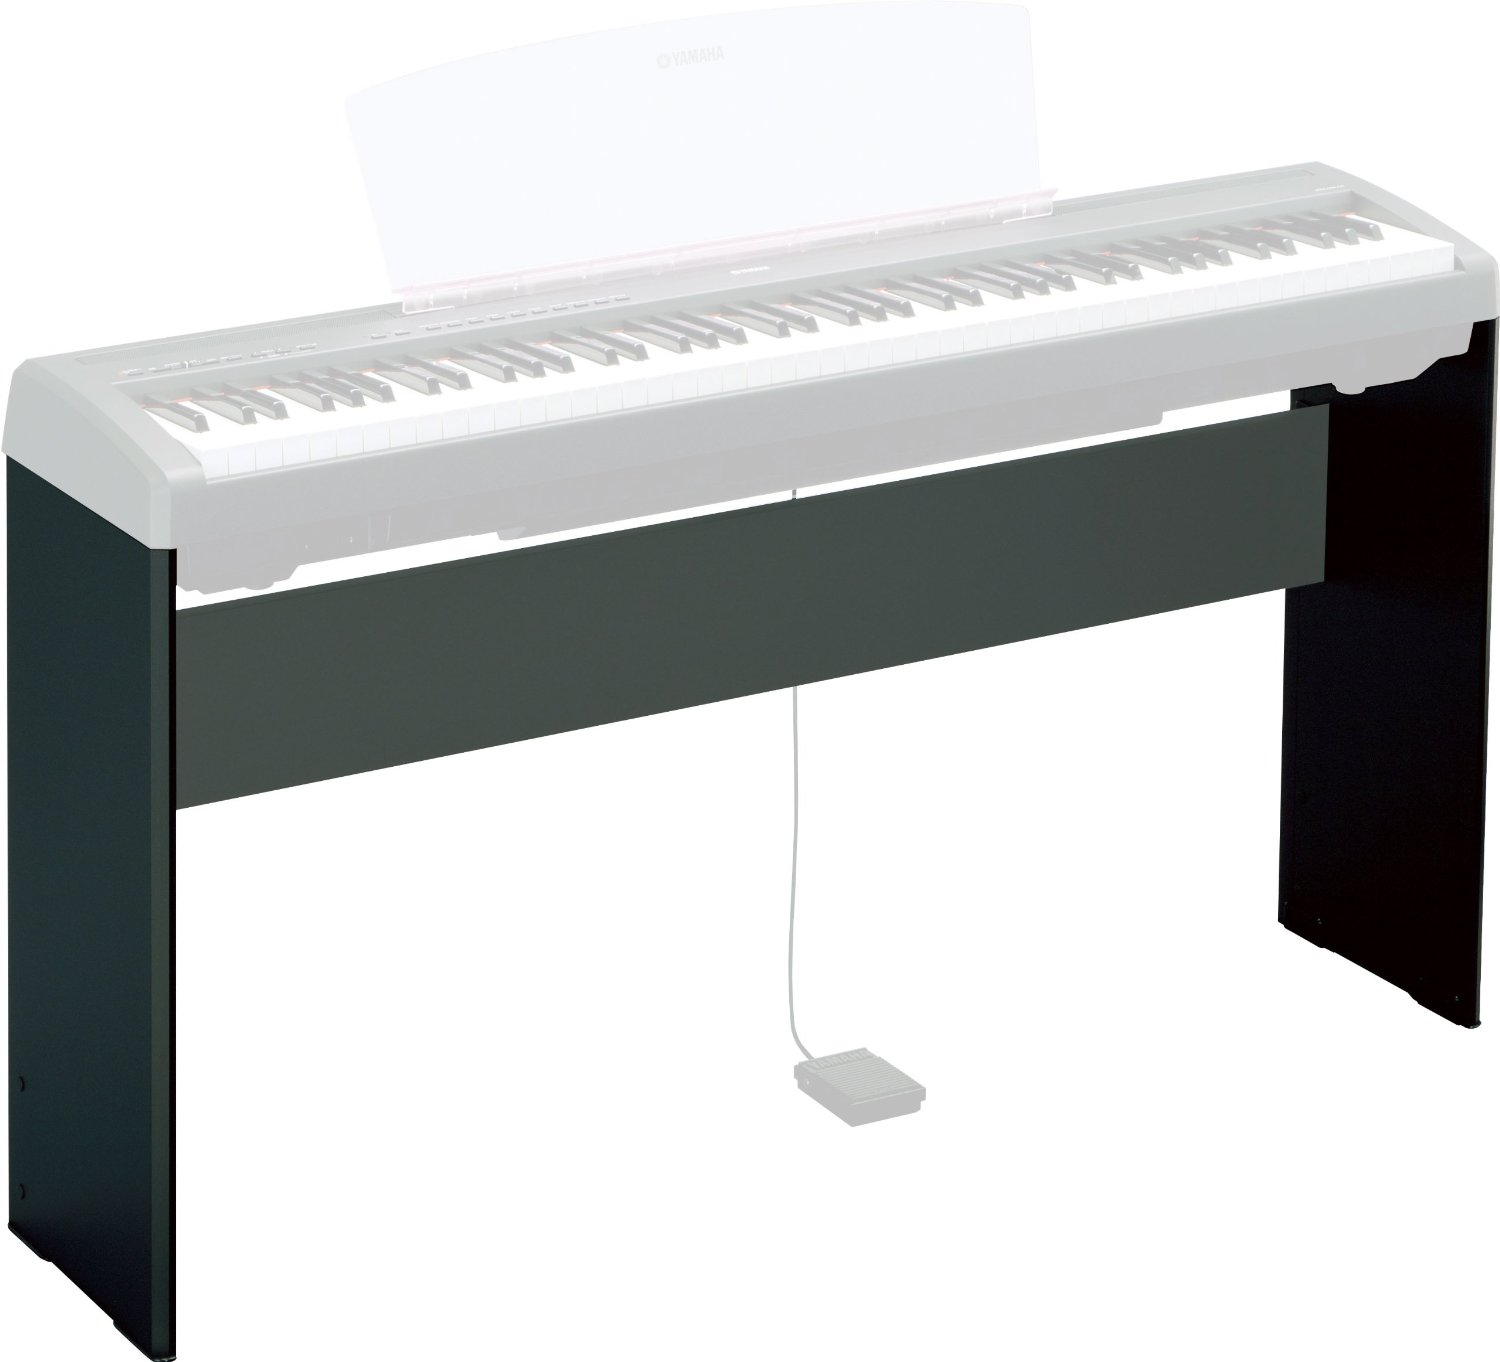 yamaha p 35 im test ratgeber digitalpiano f r einsteiger. Black Bedroom Furniture Sets. Home Design Ideas